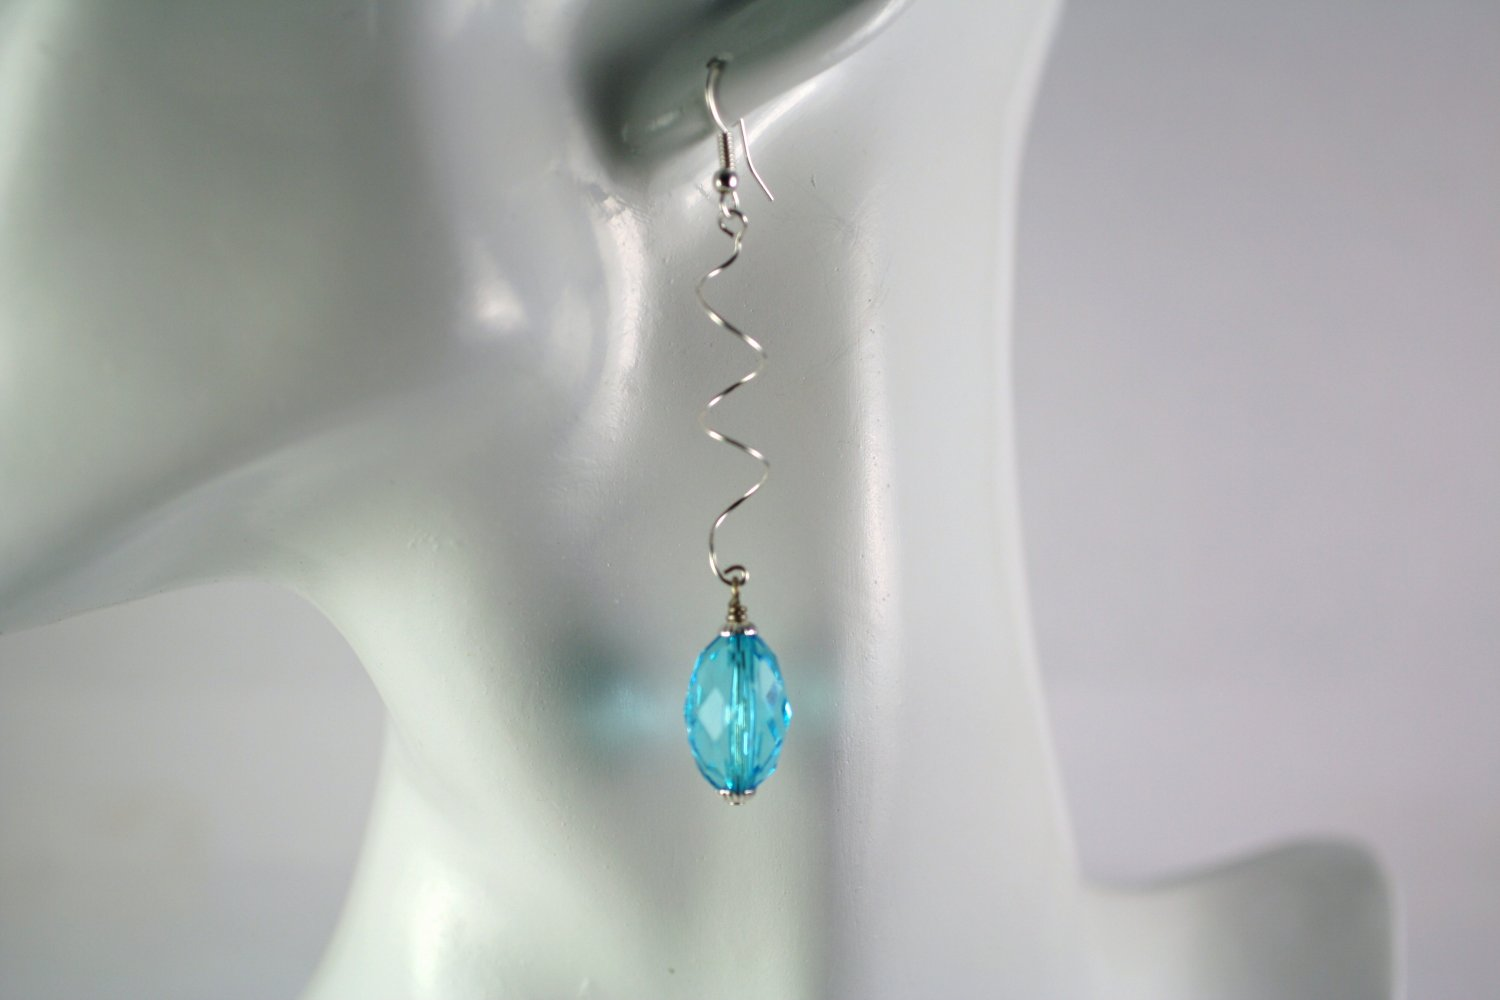 Silver Spiral Drop Dangle Earrings with  Light Blue Oval Beads Handcrafted Jewelry